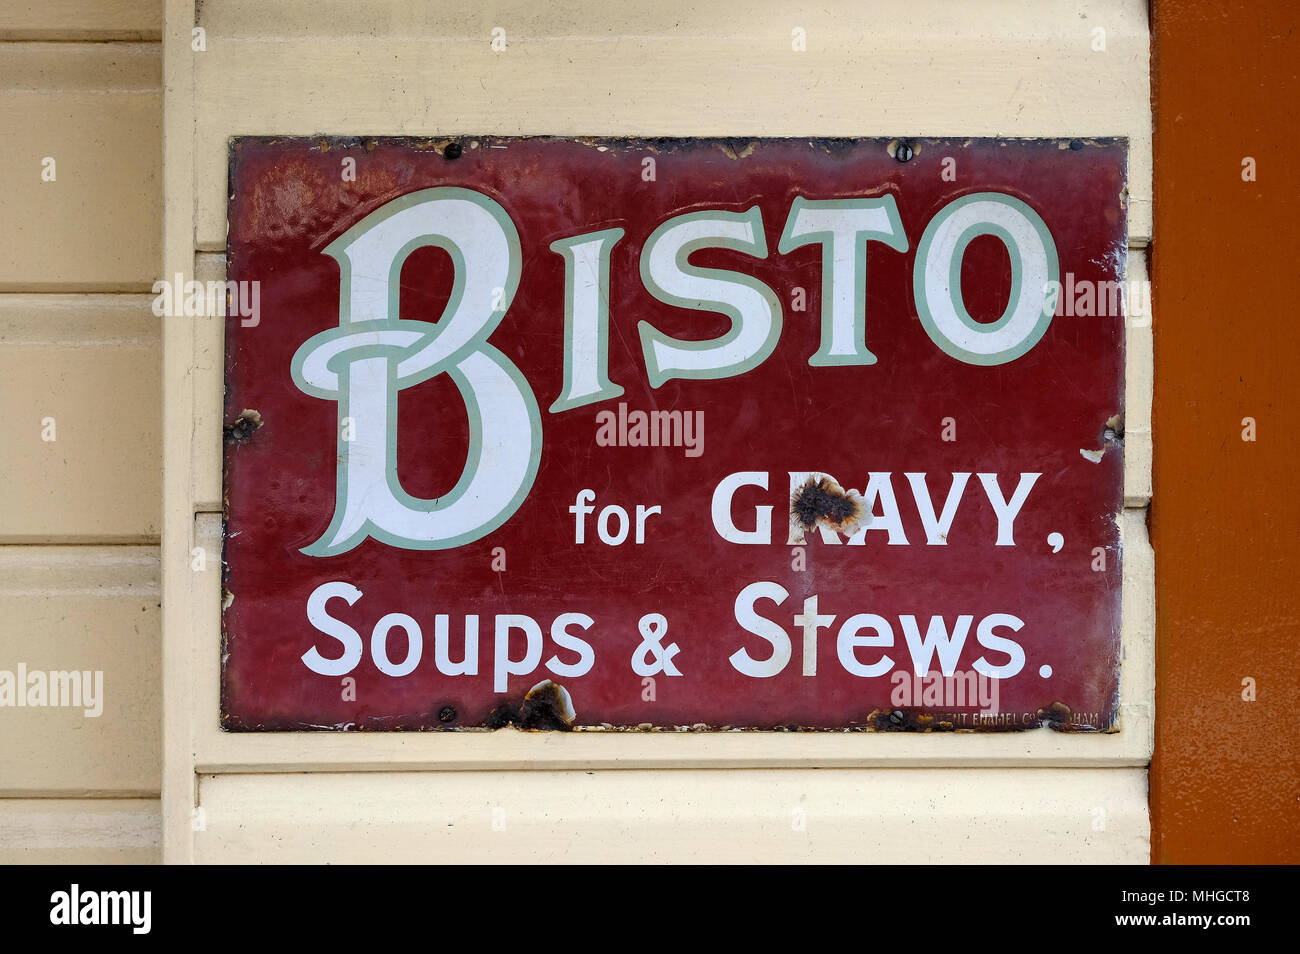 old bisto gravy soups and stews sign - Stock Image